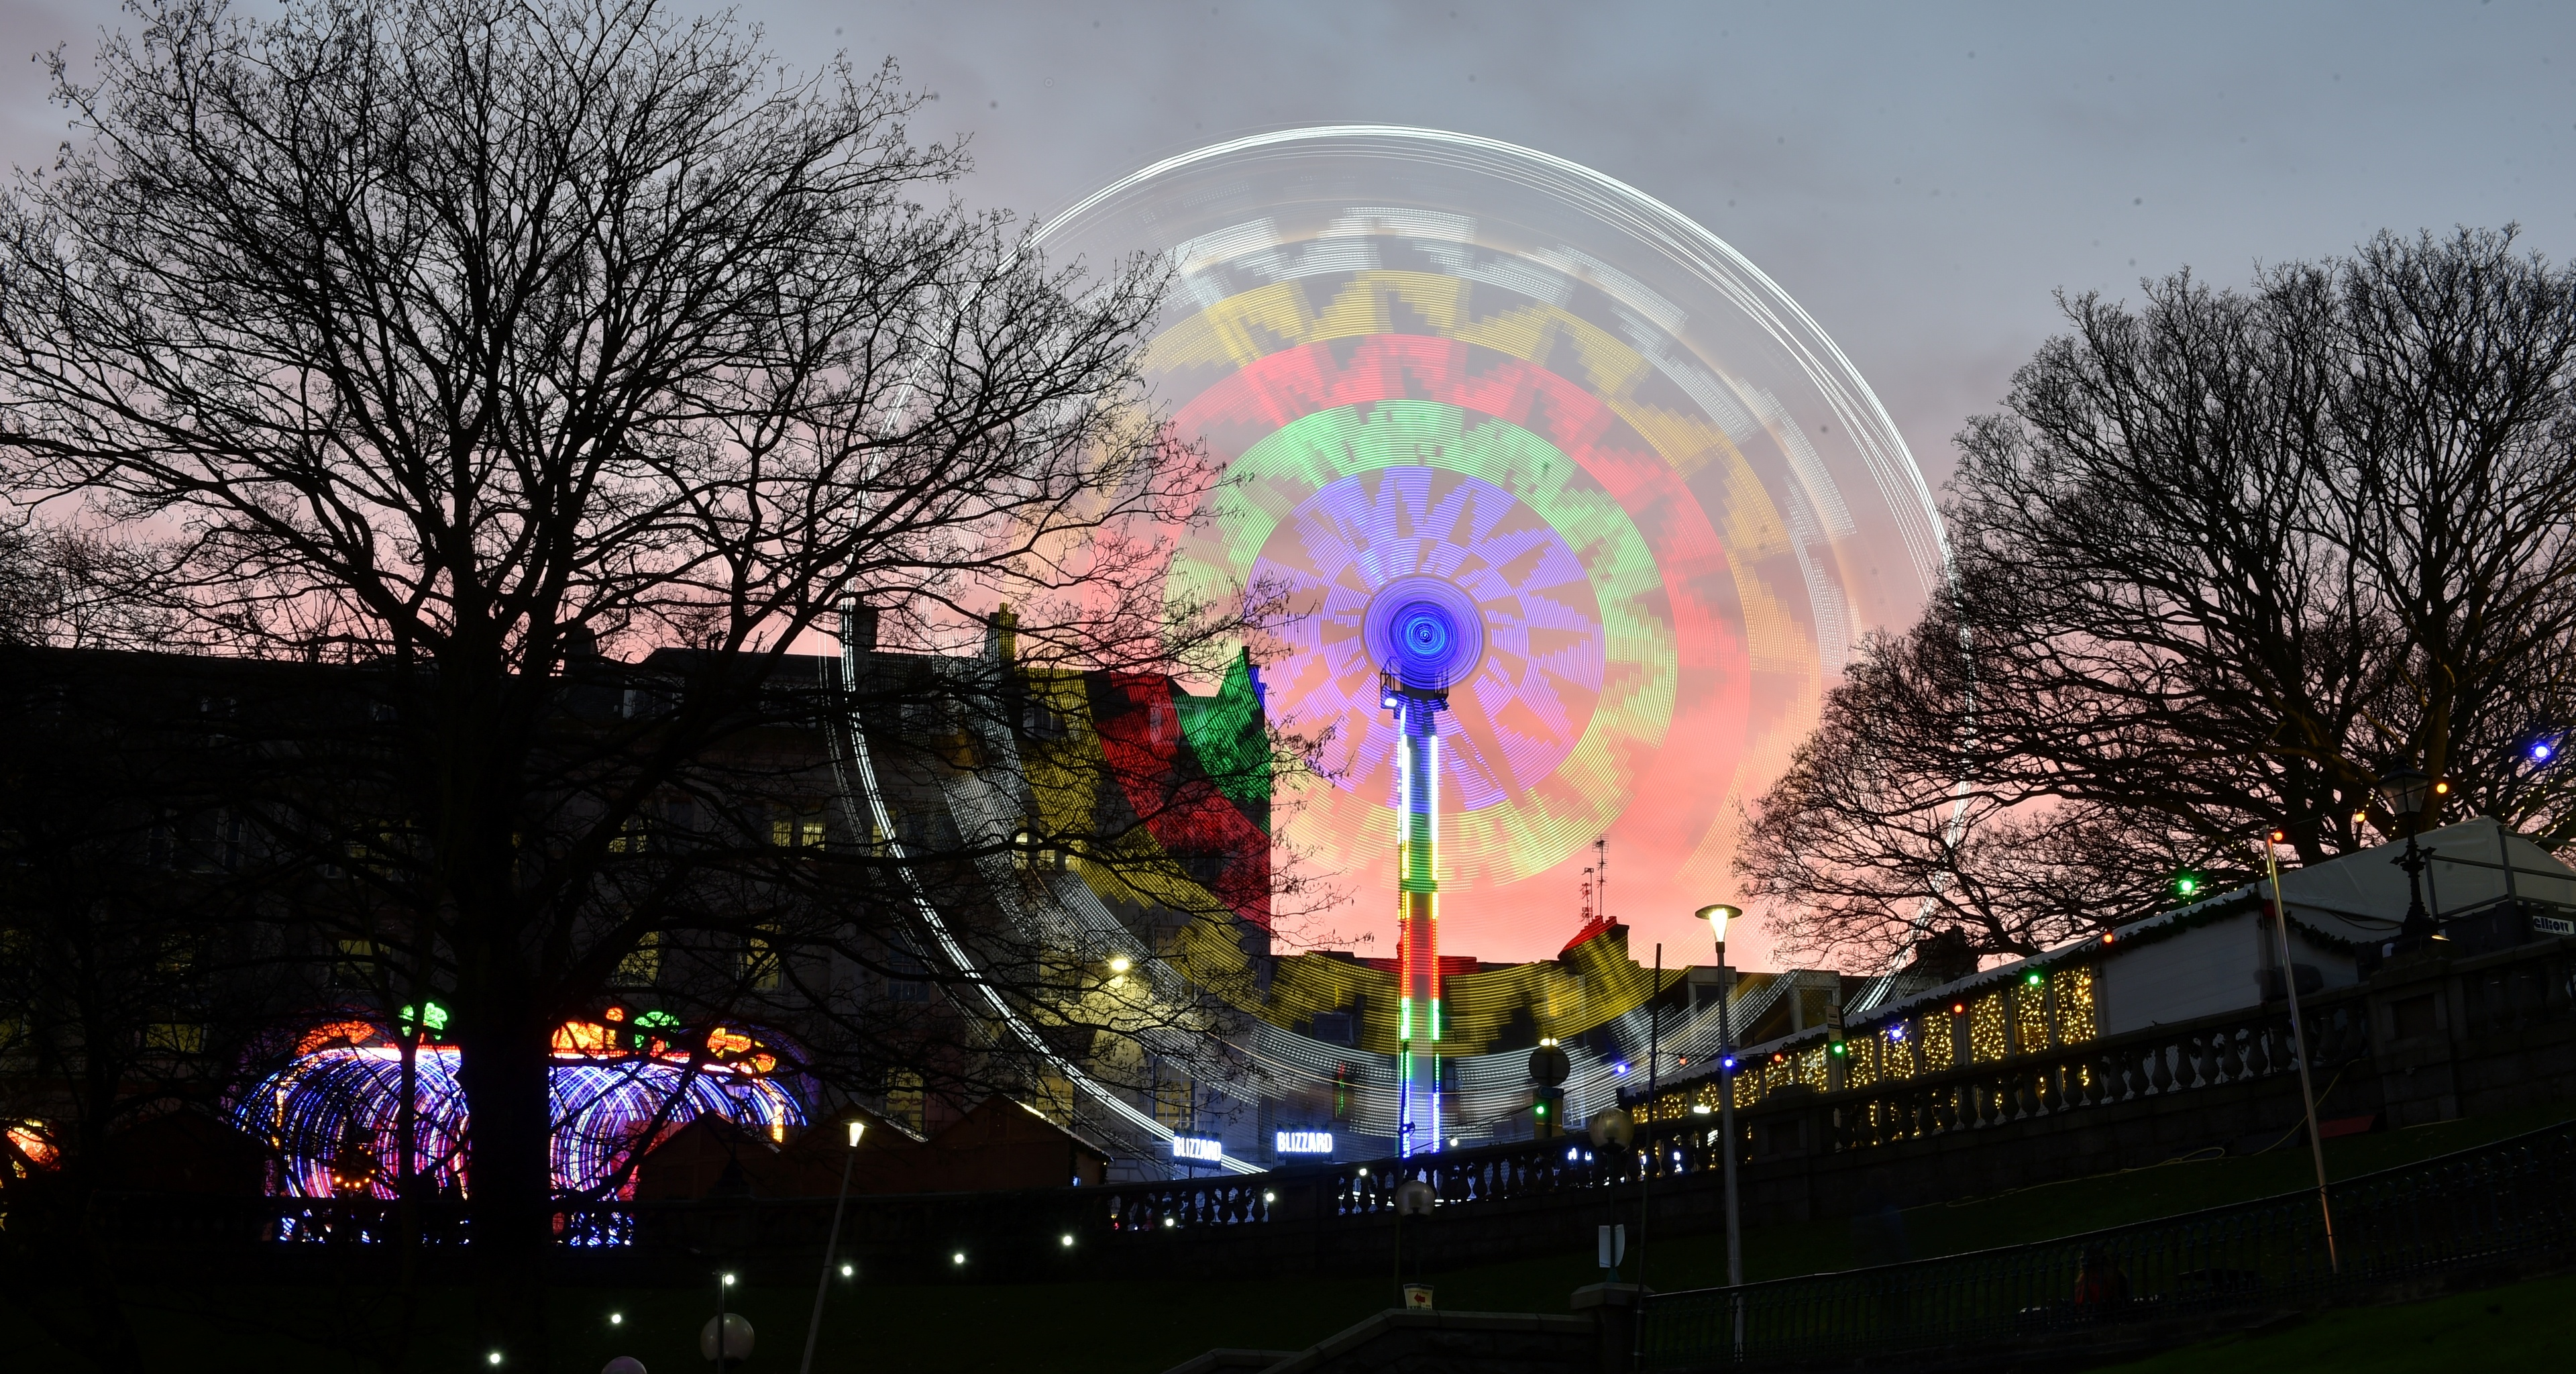 The attractions on Union Terrace